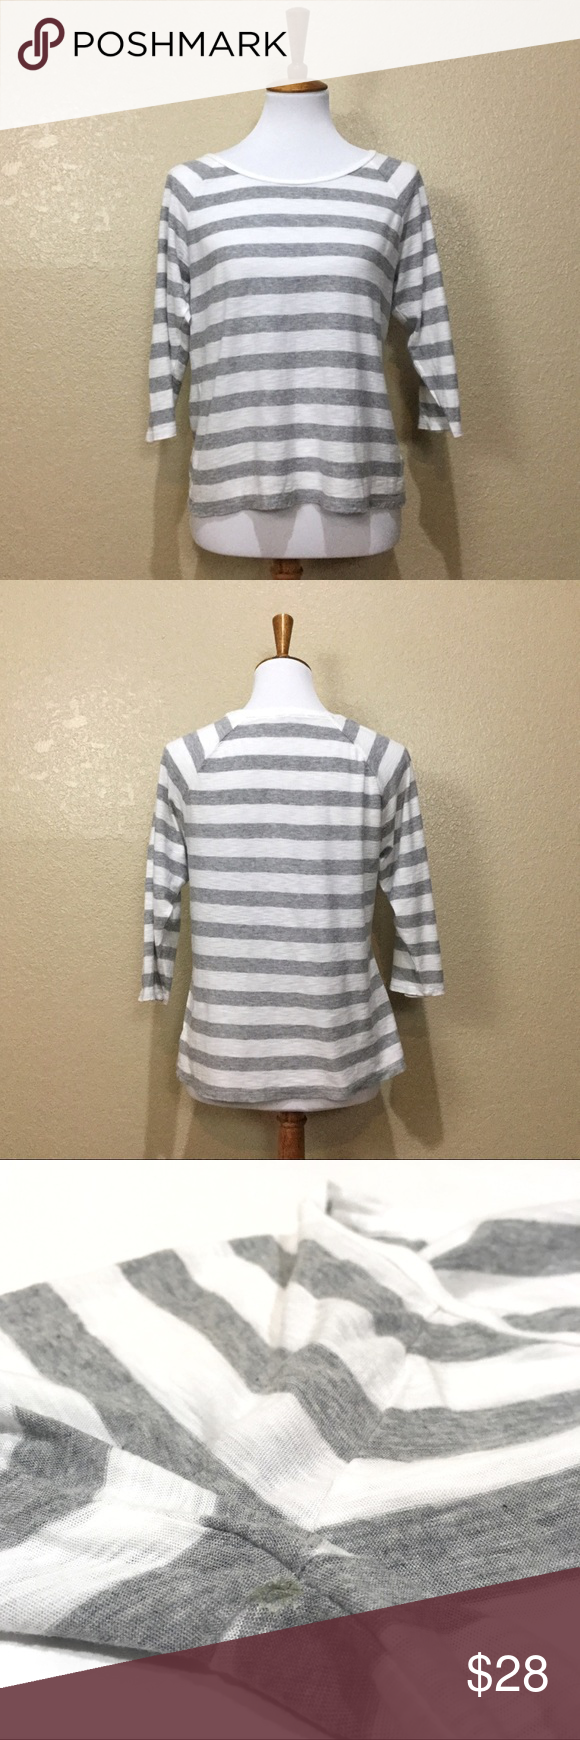 Standard James Perse Raglan Dolman Striped Tee Standard James Perse